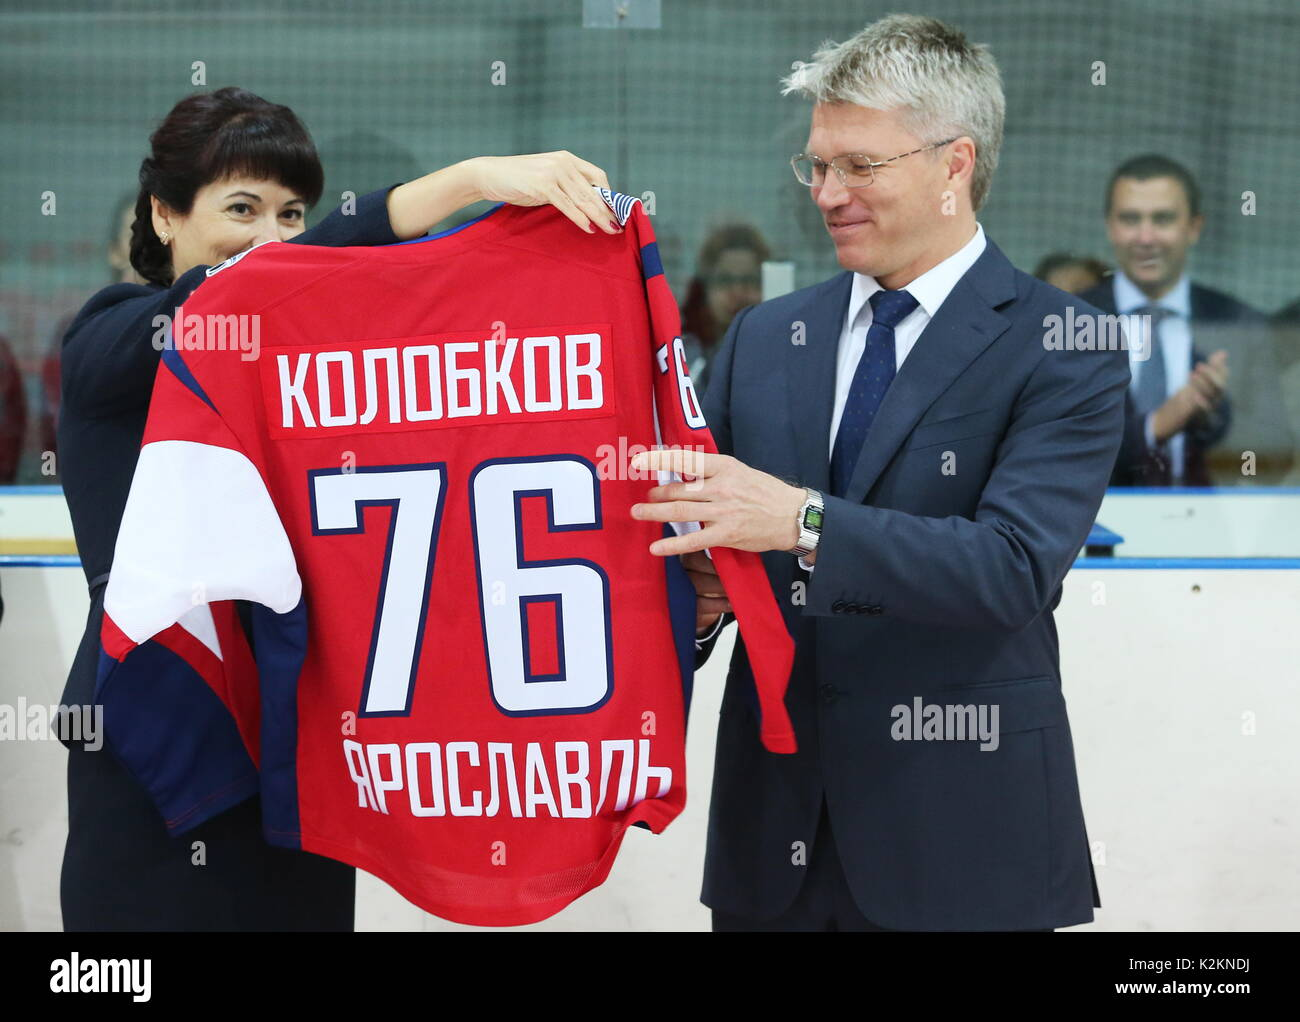 Yaroslavl, Russia. 1st Sep, 2017. Russian Sport Minister Pavel Kolobkov (R) and the school's director Yelena Krosheva visit an ice hockey arena of State Olympic Reserve Ice Hockey School. Credit: Vladimir Gerdo/TASS/Alamy Live News - Stock Image